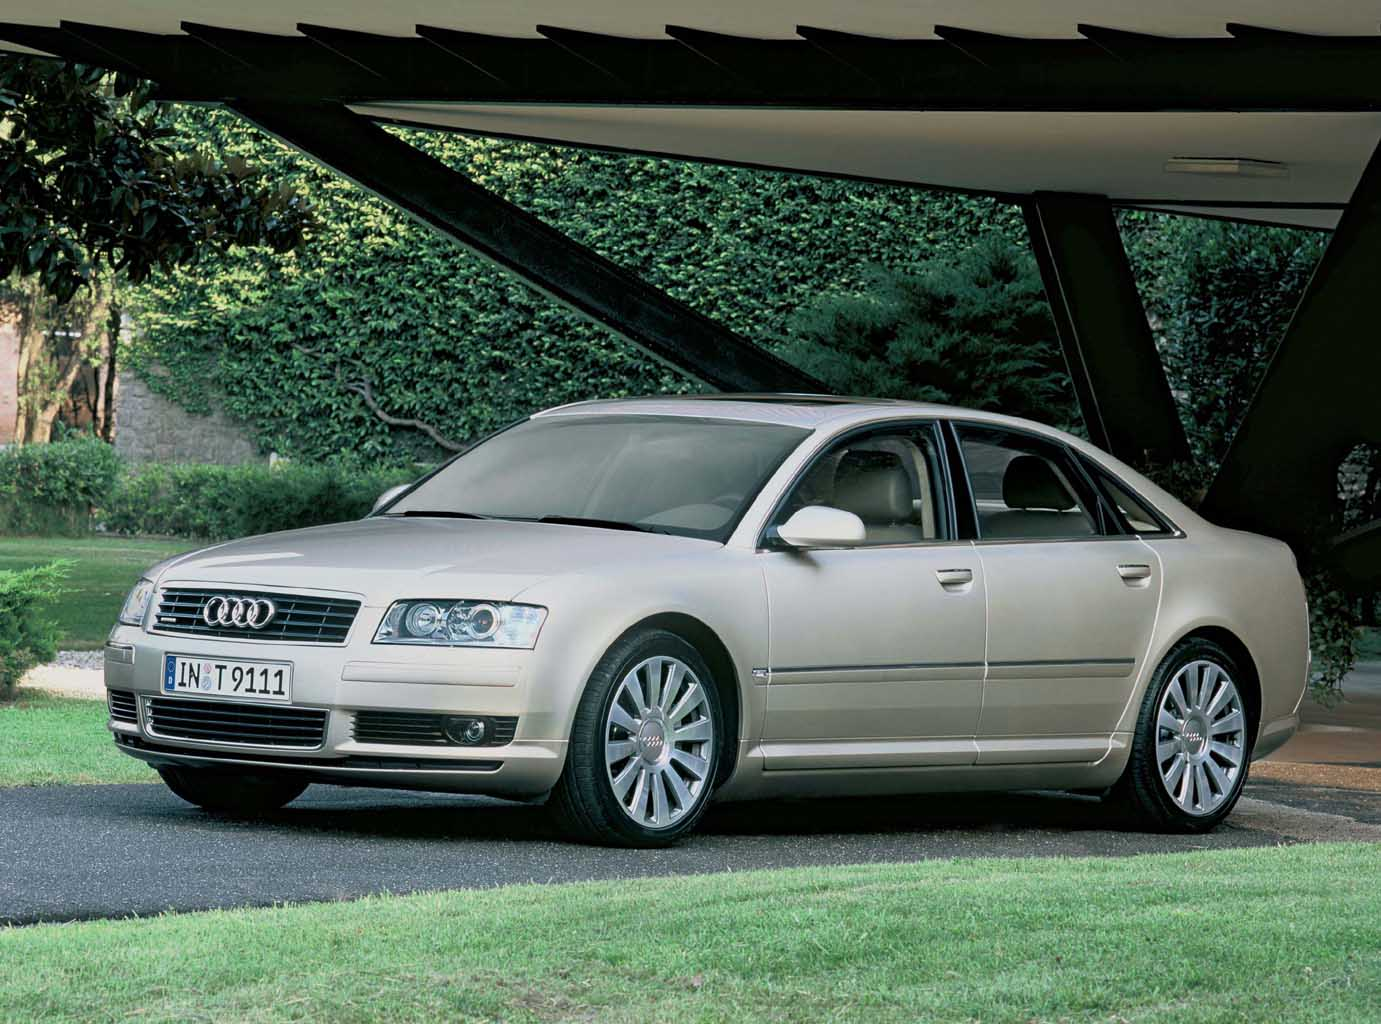 2002 Audi A8 3.7 related infomation,specifications - WeiLi Automotive Network